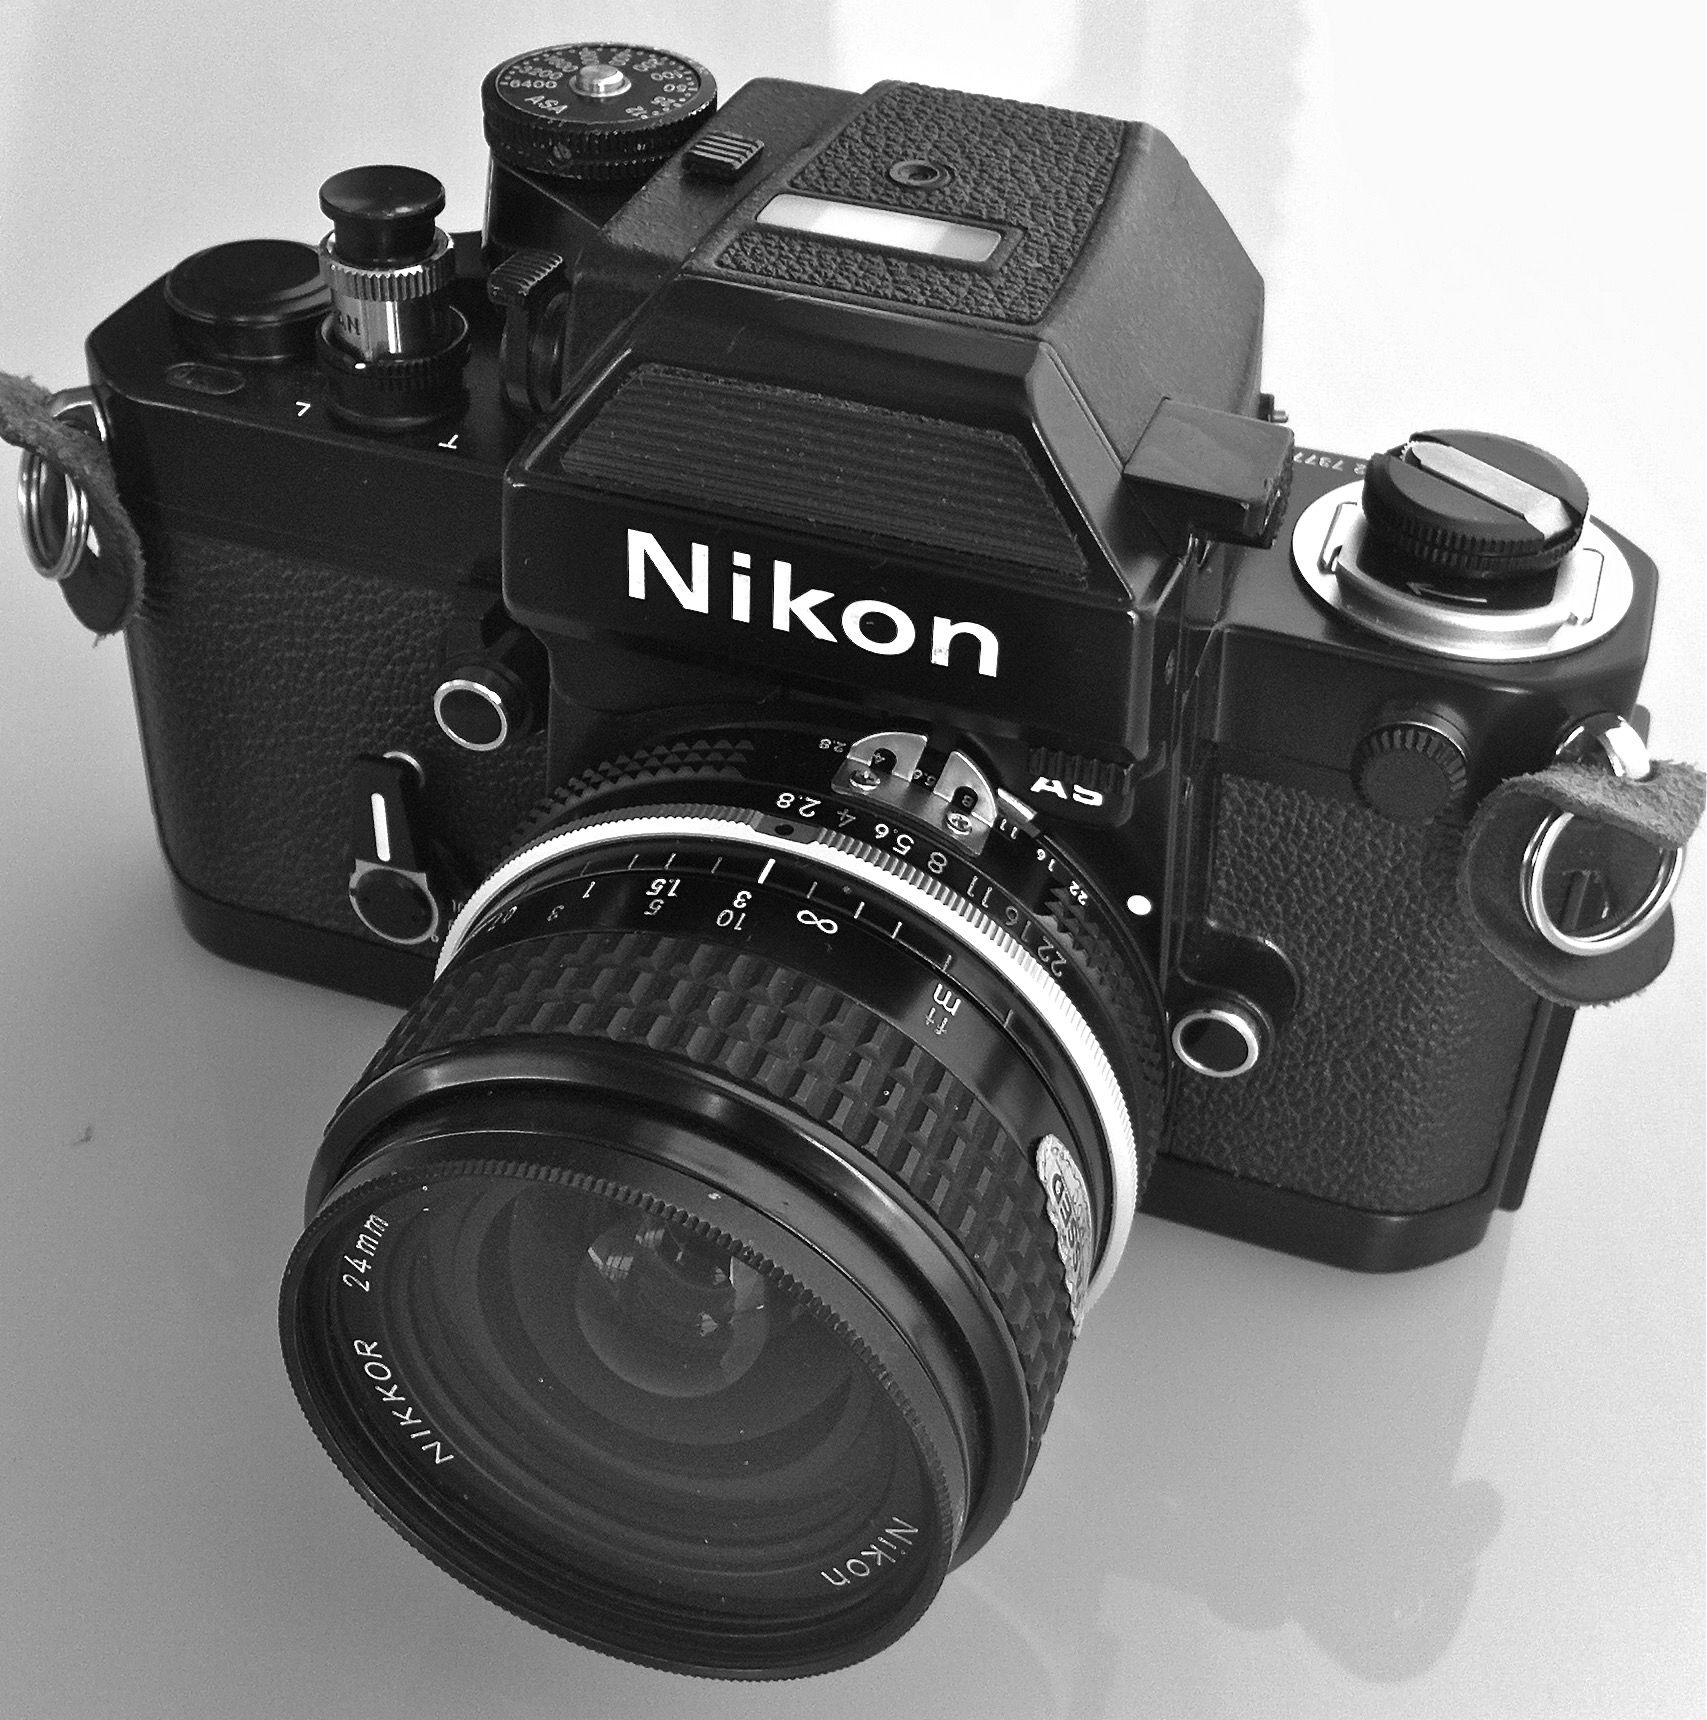 Nikon F2AS Black Body